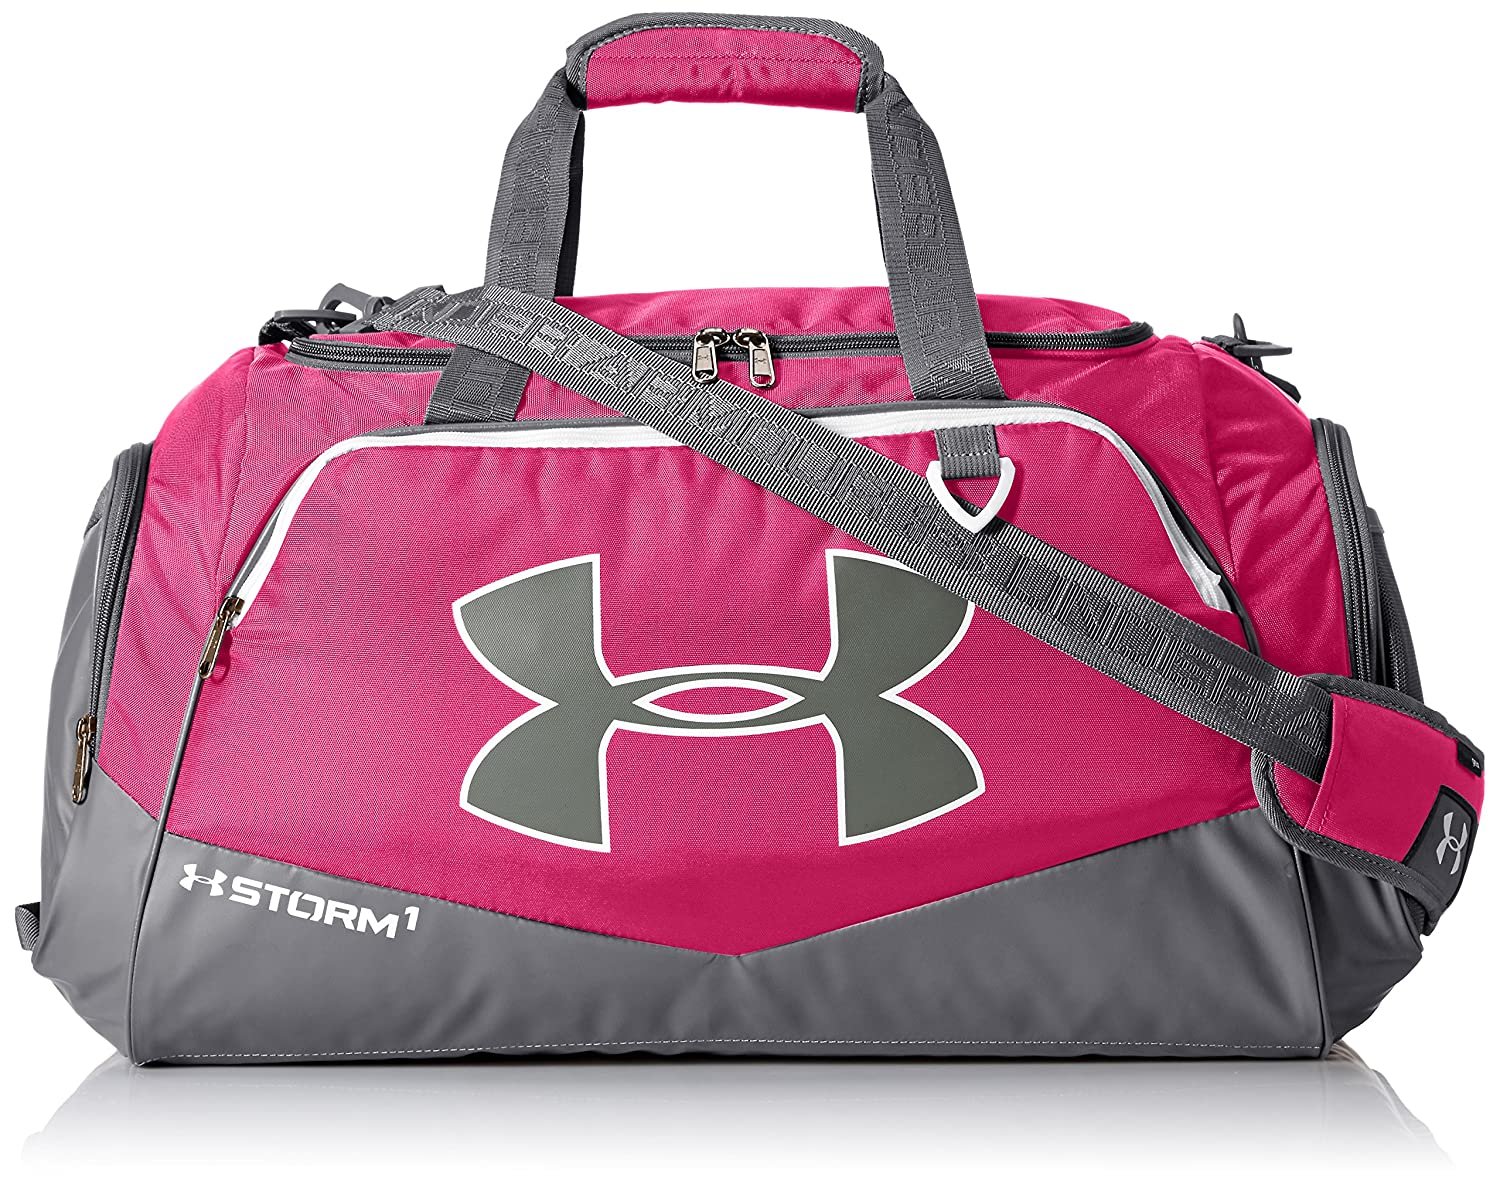 d4d36c77928 Amazon.com   Under Armour Team Storm Undeniable Medium Duffle, Tropic Pink  (654) Silver, One Size   Sports   Outdoors